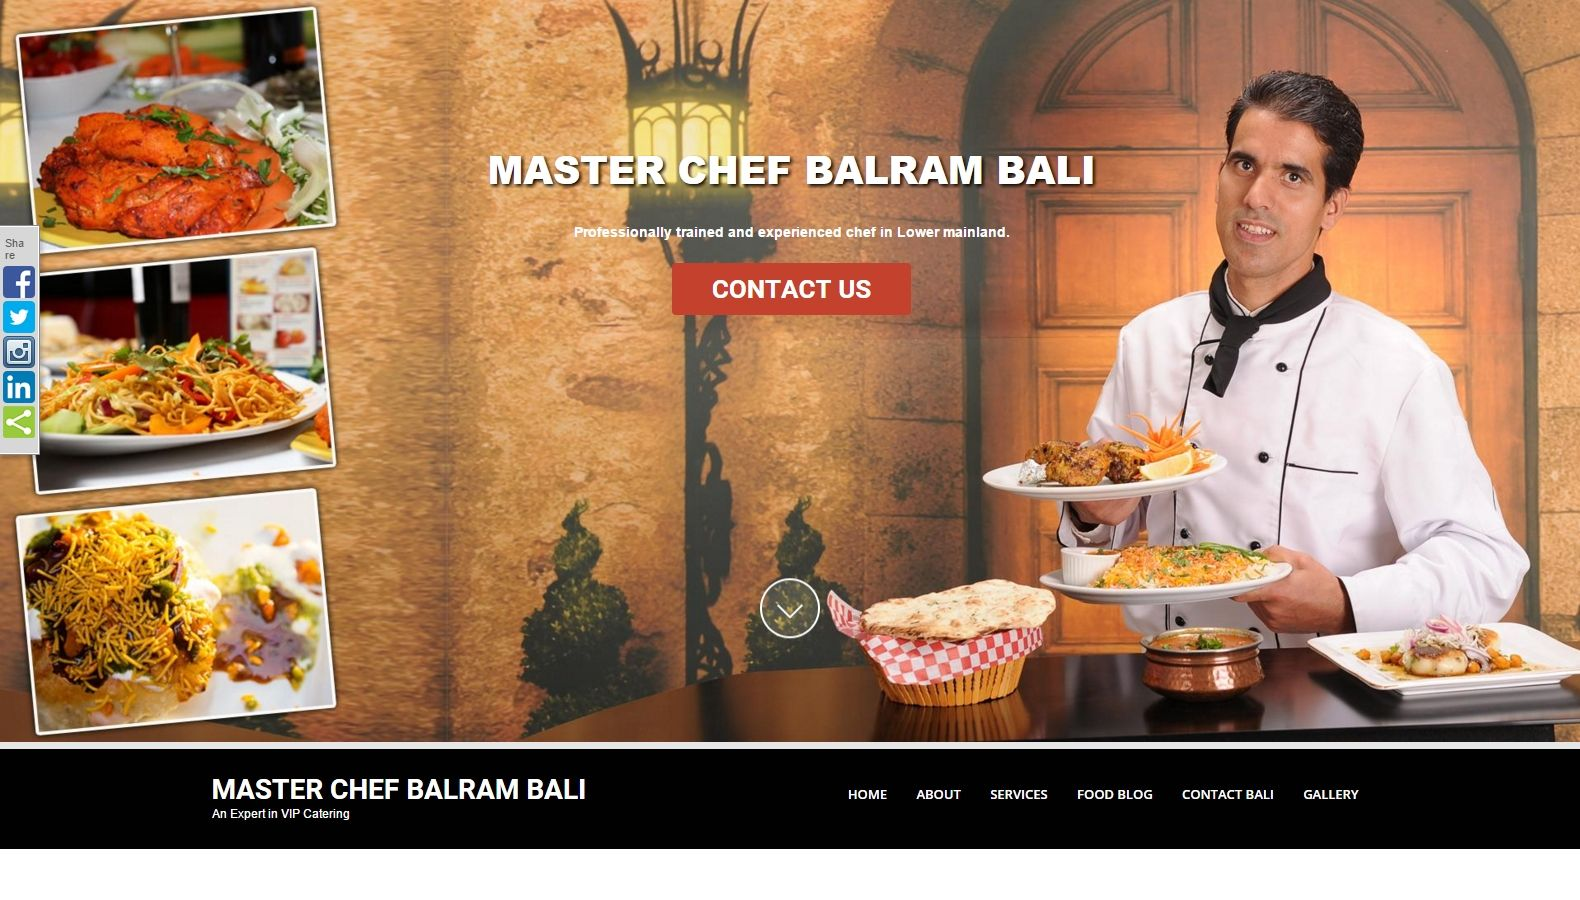 Master Chef Balram Bali - Website Designing By SEOTeam.ca